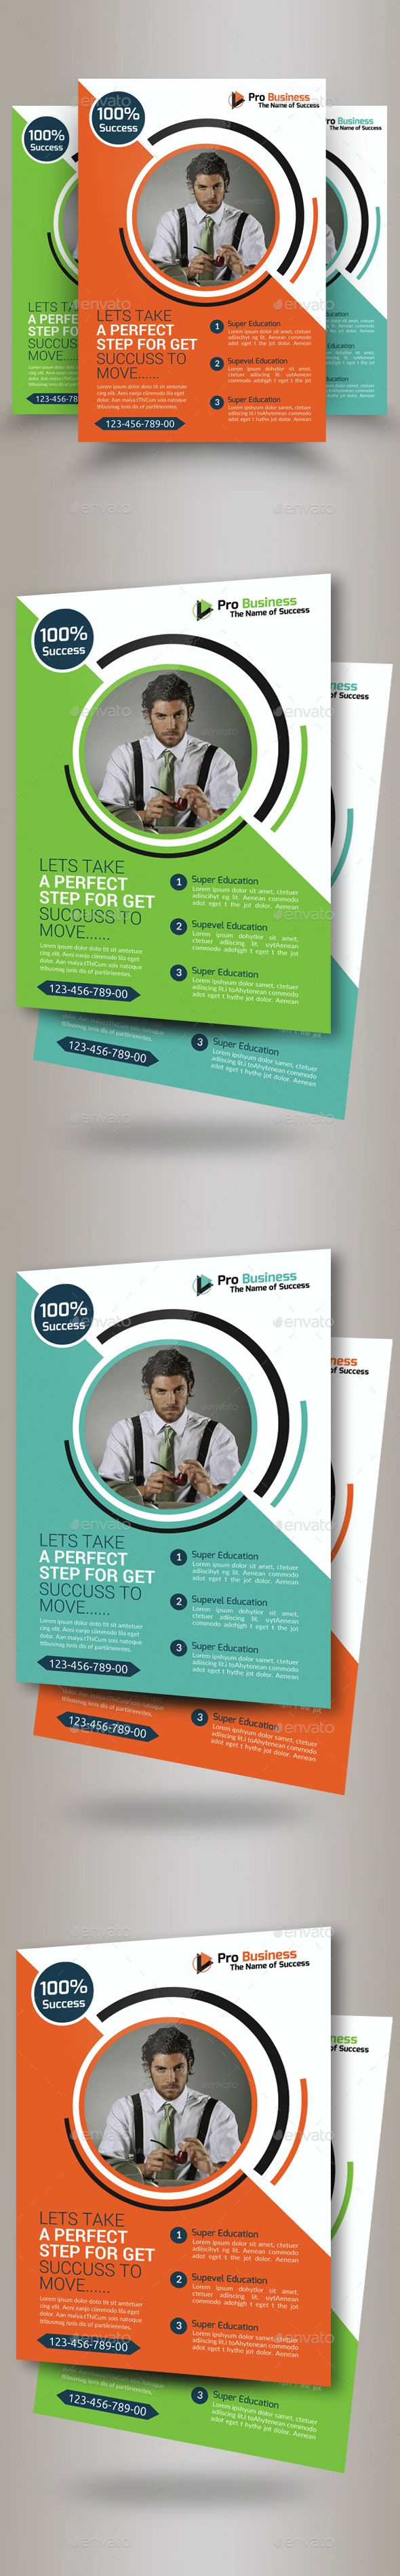 Corporate Strategy Business Flyer Template PSD. Download here: http://graphicriver.net/item/corporate-strategy-business-flyer-template/14719995?s_rank=132&ref=yinkira